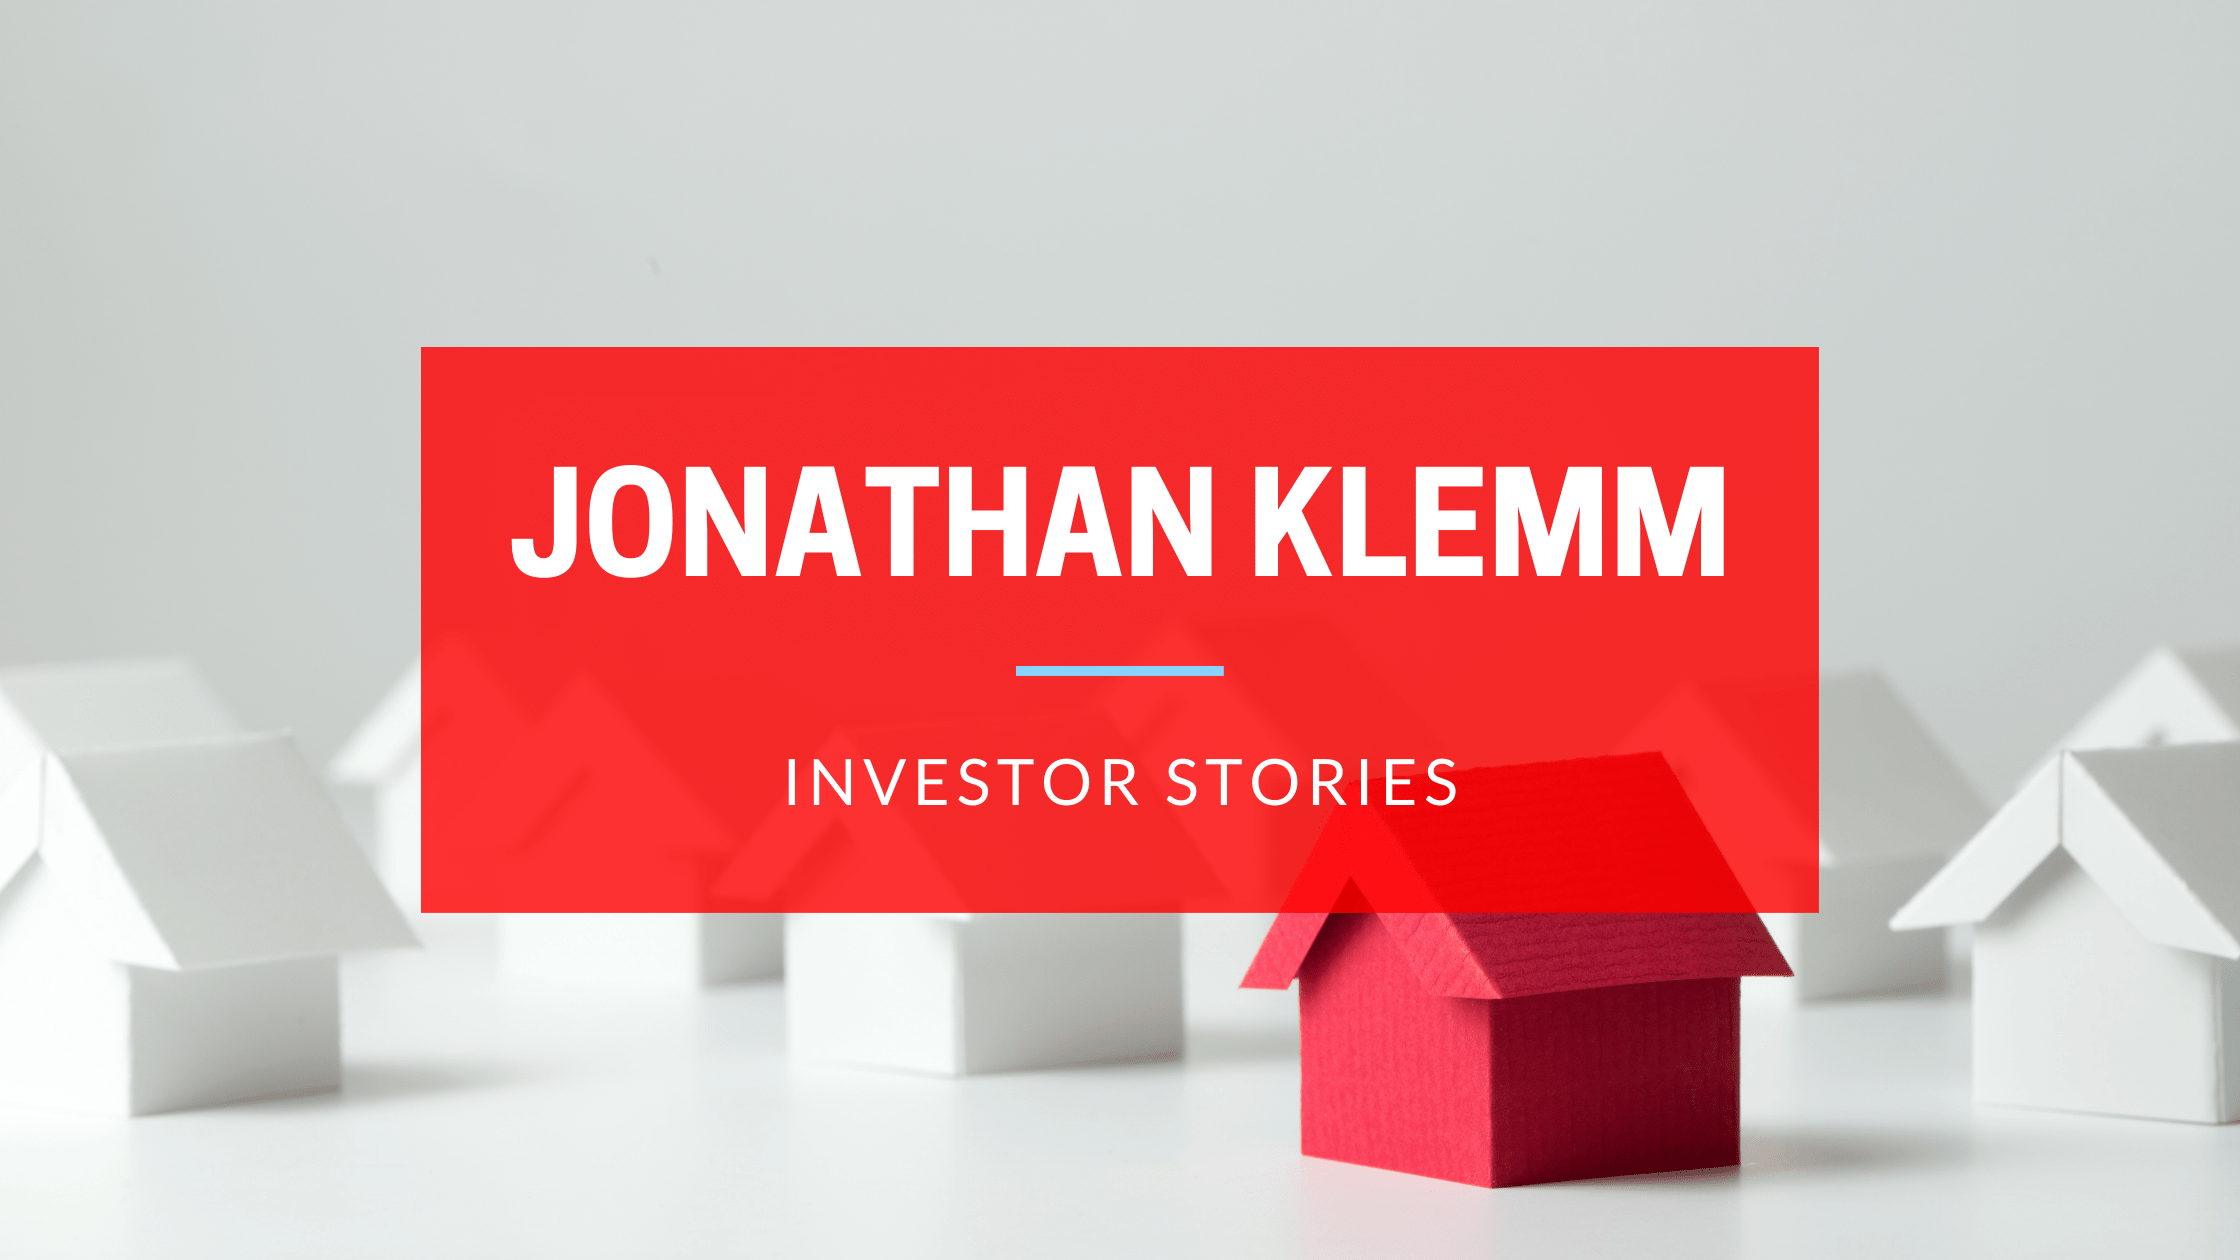 INVESTOR STORIES FEATURING JONATHAN KLEMM